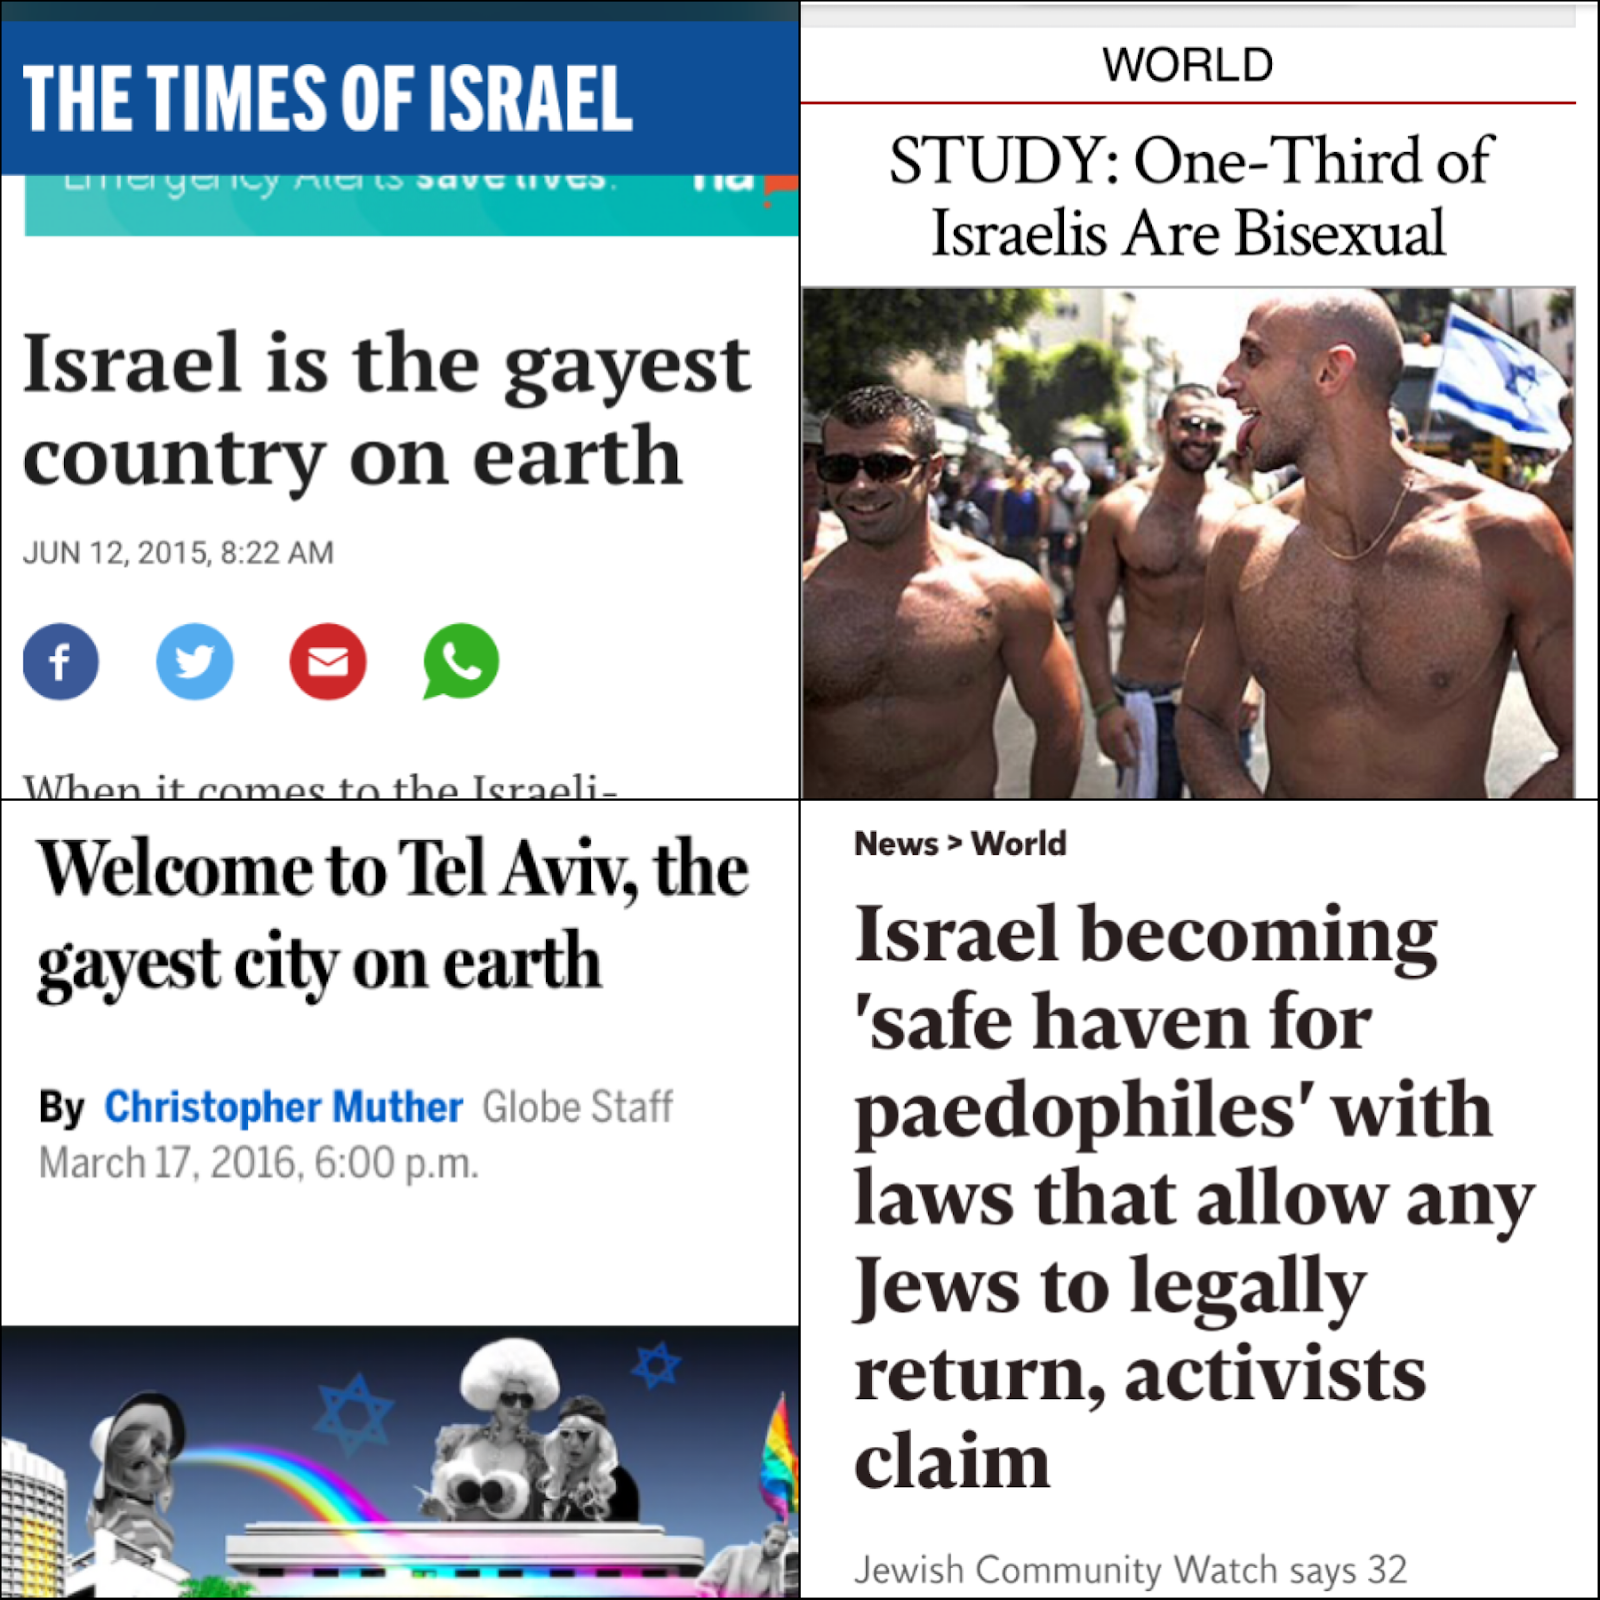 Israel is the gayest country on earth